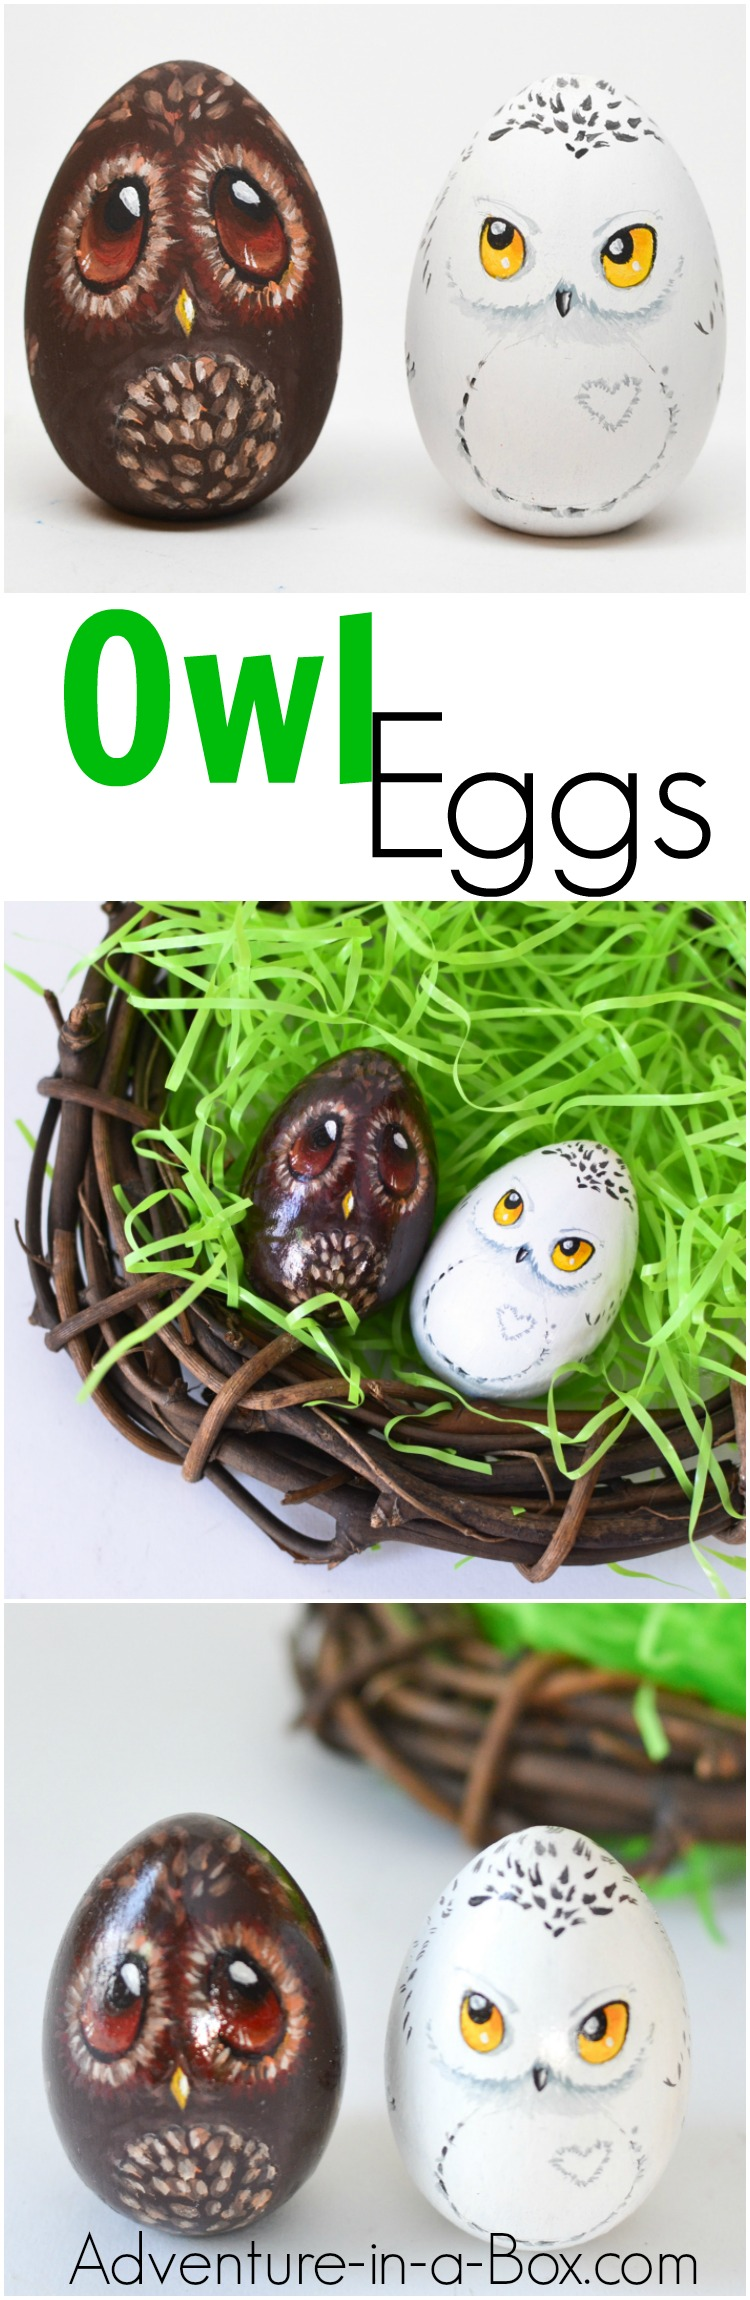 Paint your Easter eggs as cute owls and give them as gifts this year! A good Easter craft for children and adults to enjoy together.